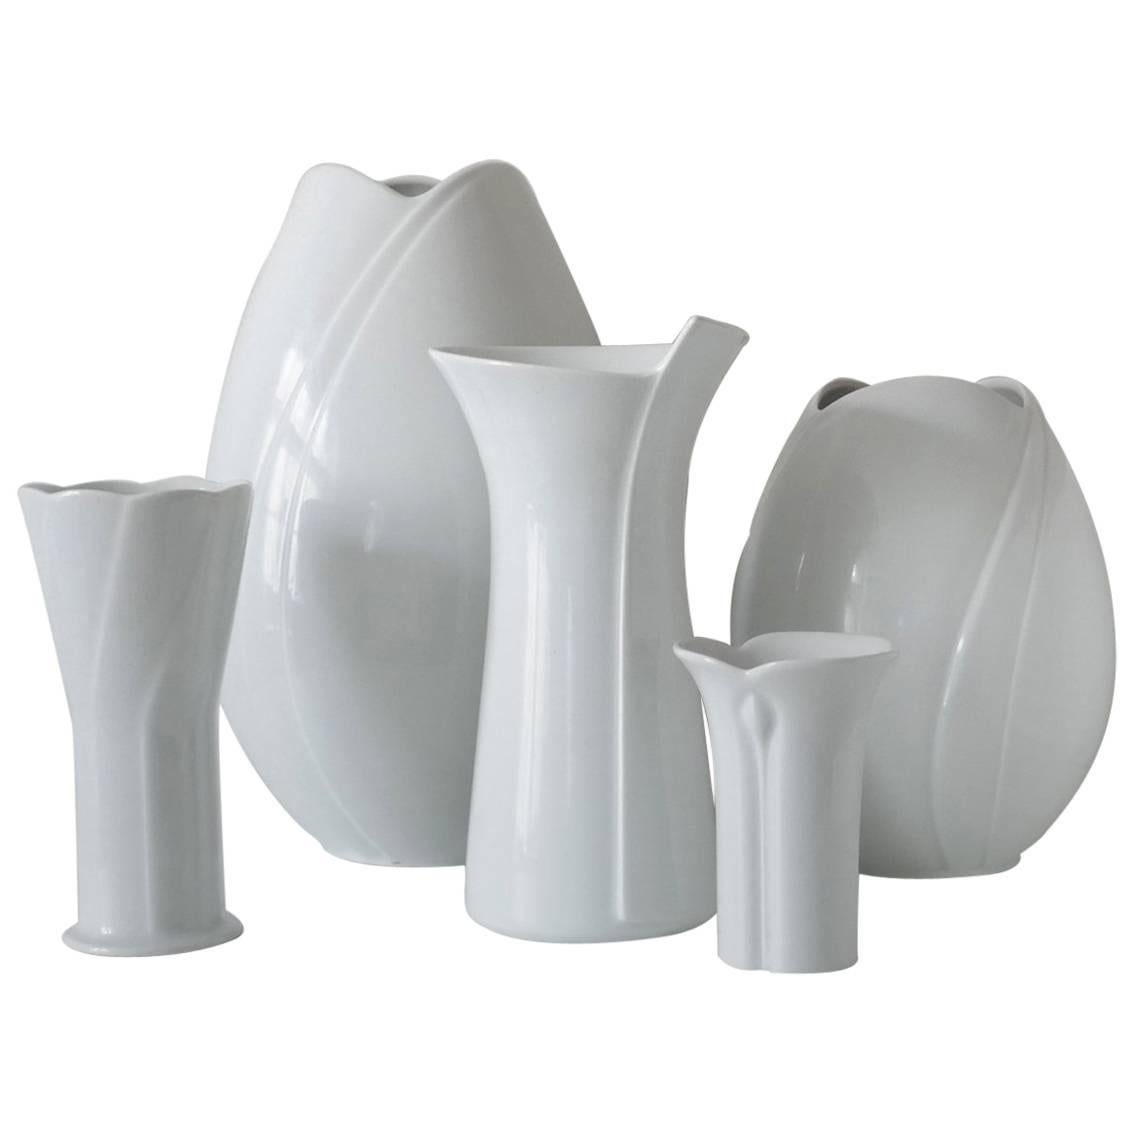 Set of Five German White Porcelain Vases by Arzberg Bavaria, 1960s